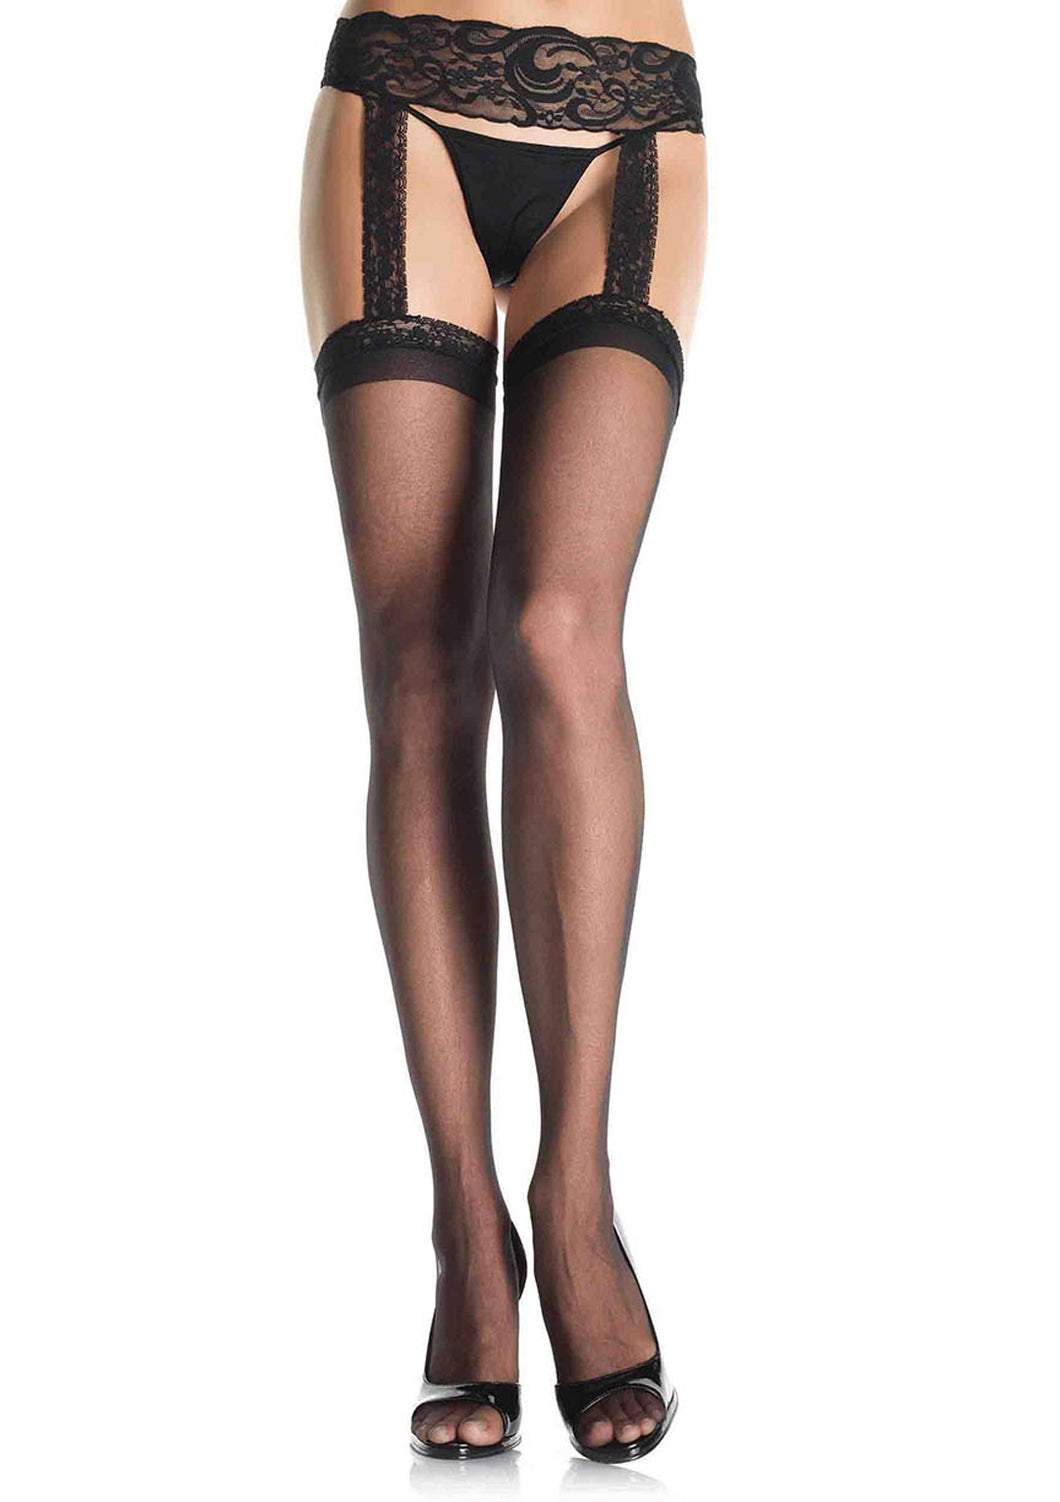 Sheer Lace Top Stockings W/Garter Belt